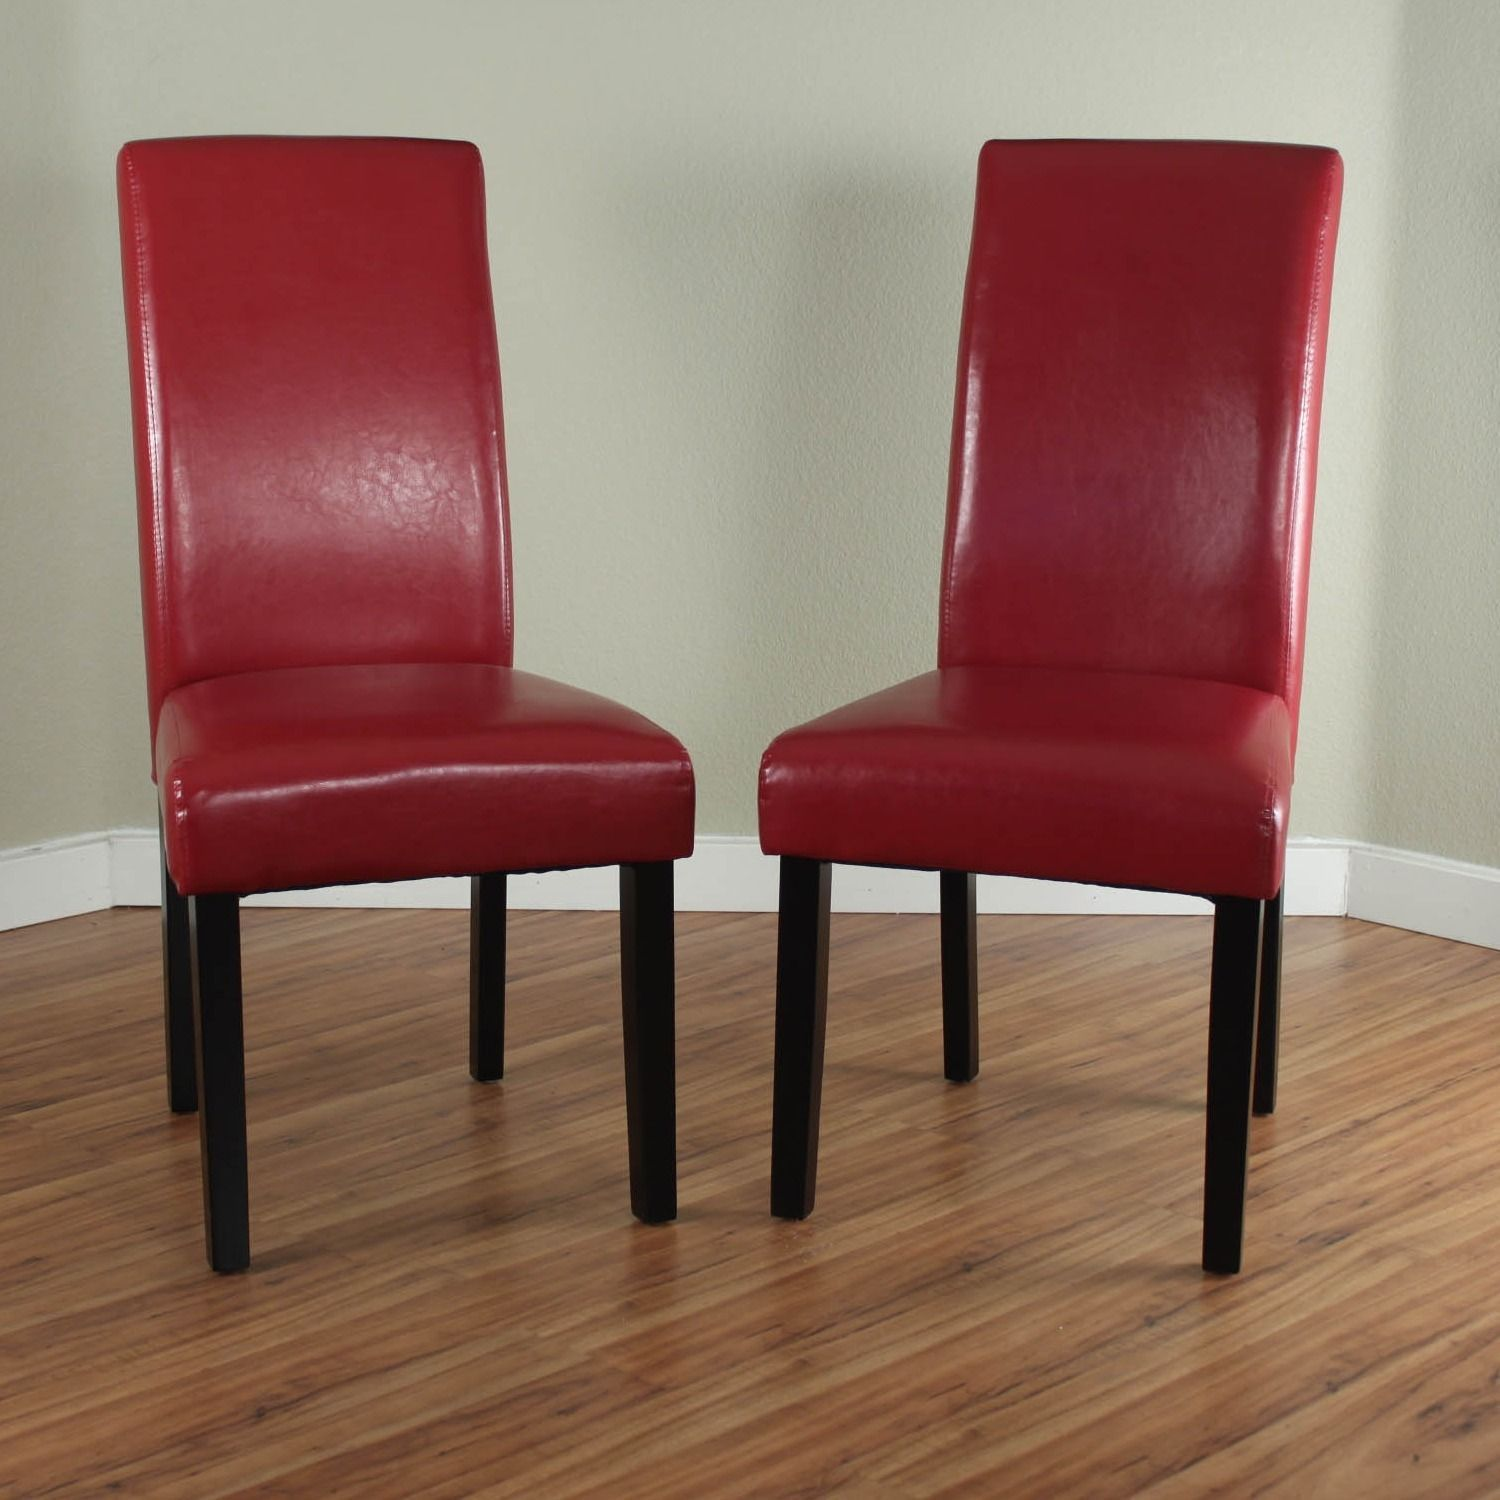 Enhance Your Dining Rooms Décor With These Contemporary Red Chairs Made Faux Leather To Give Them A Modern Look Have Pine Wood